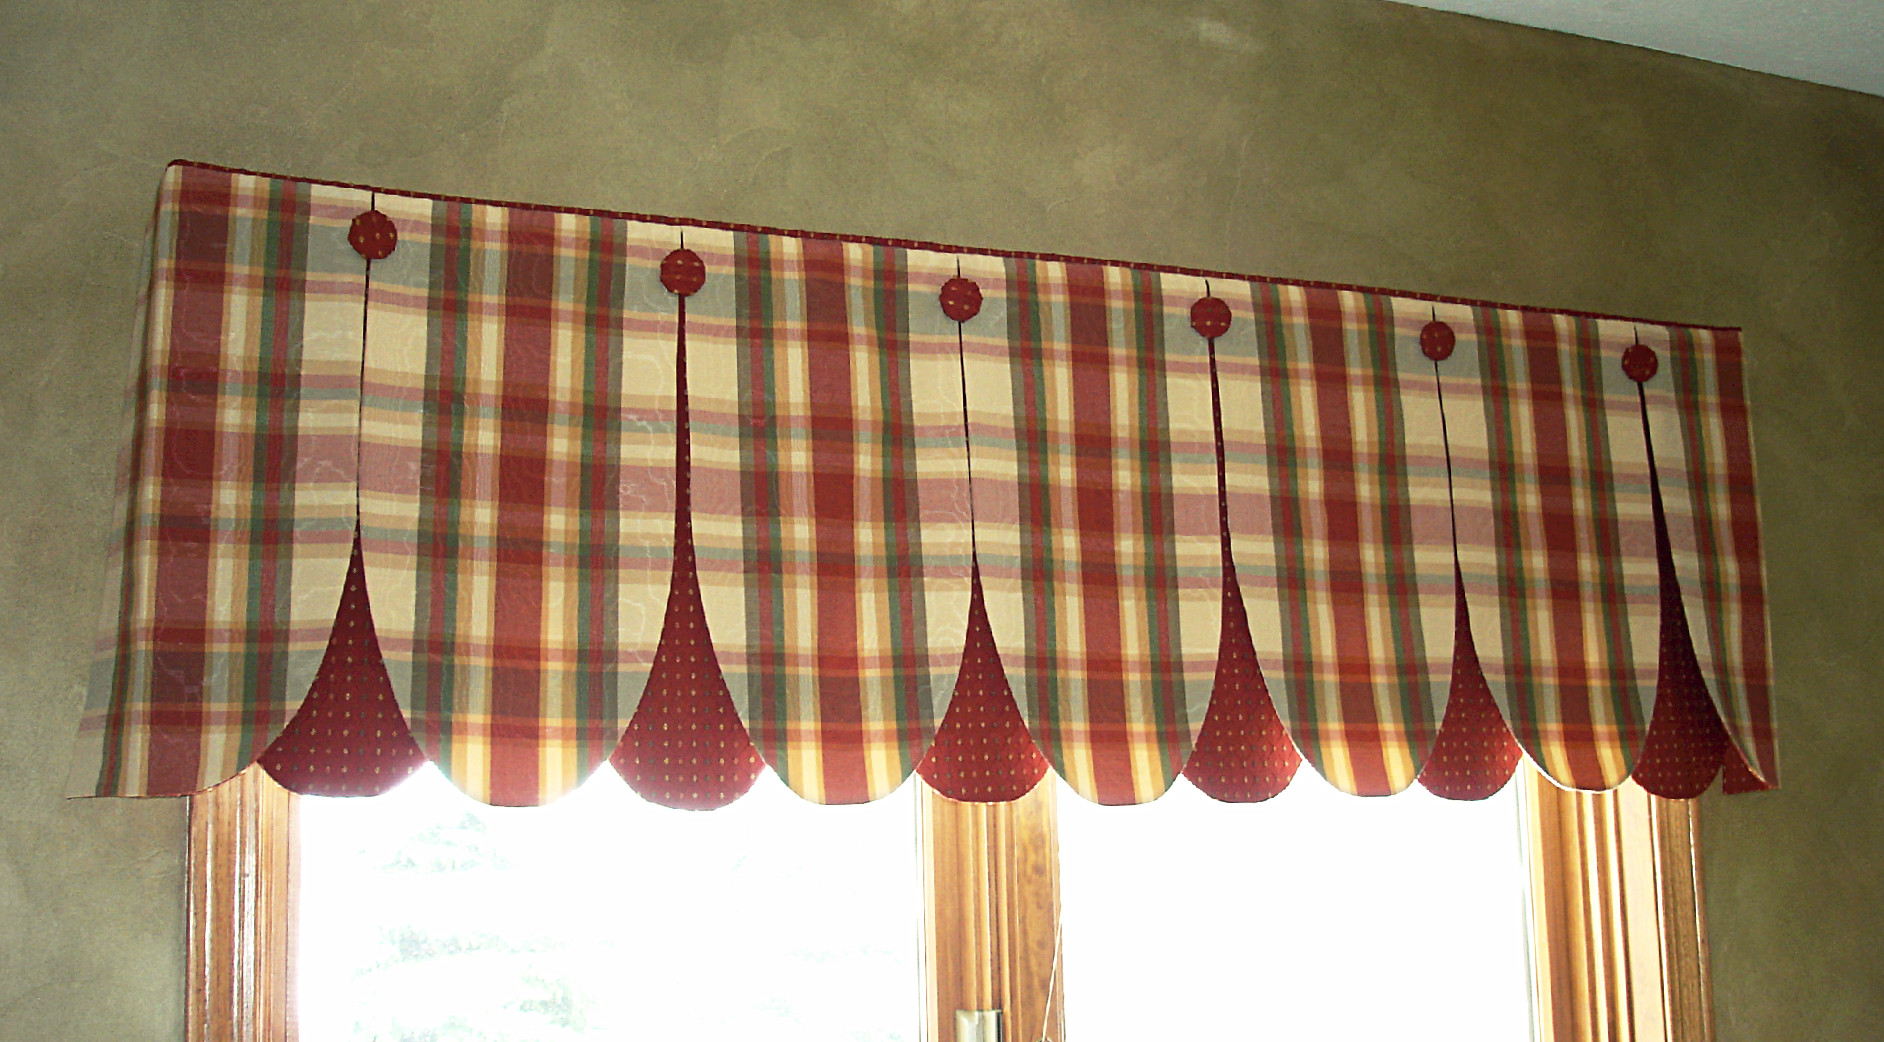 red valances for kitchen windows built in bench seat window treatments on pinterest roman shades